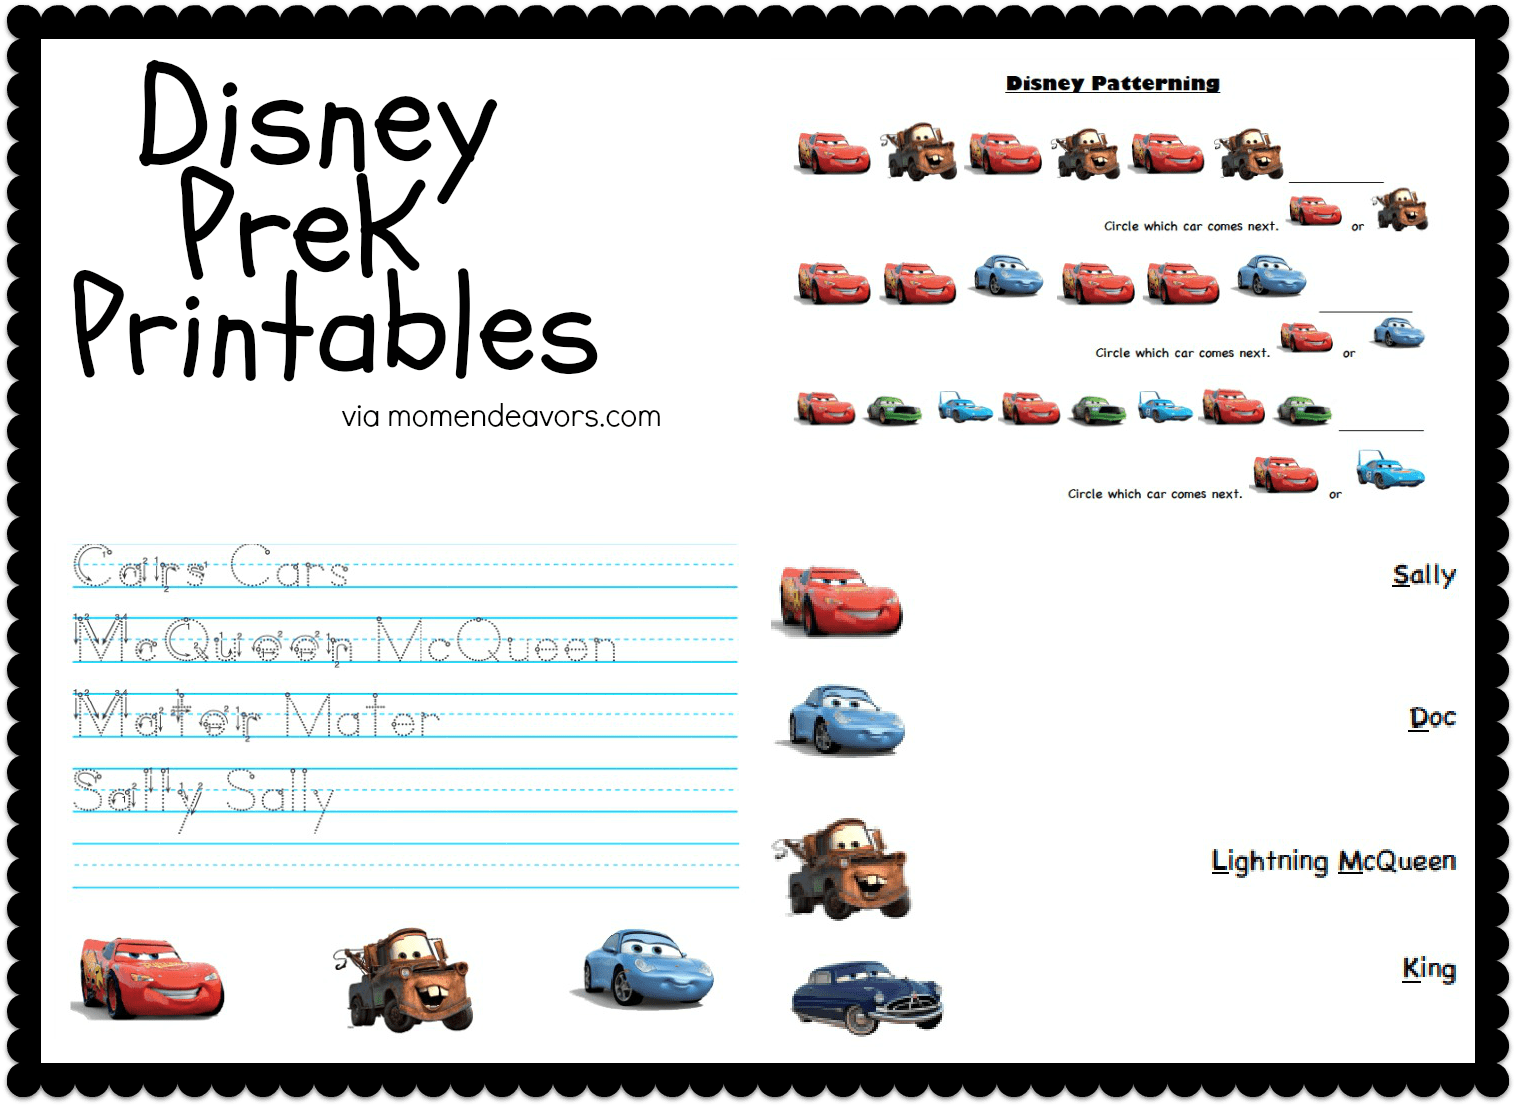 Disney Printable Images Gallery Category Page 1